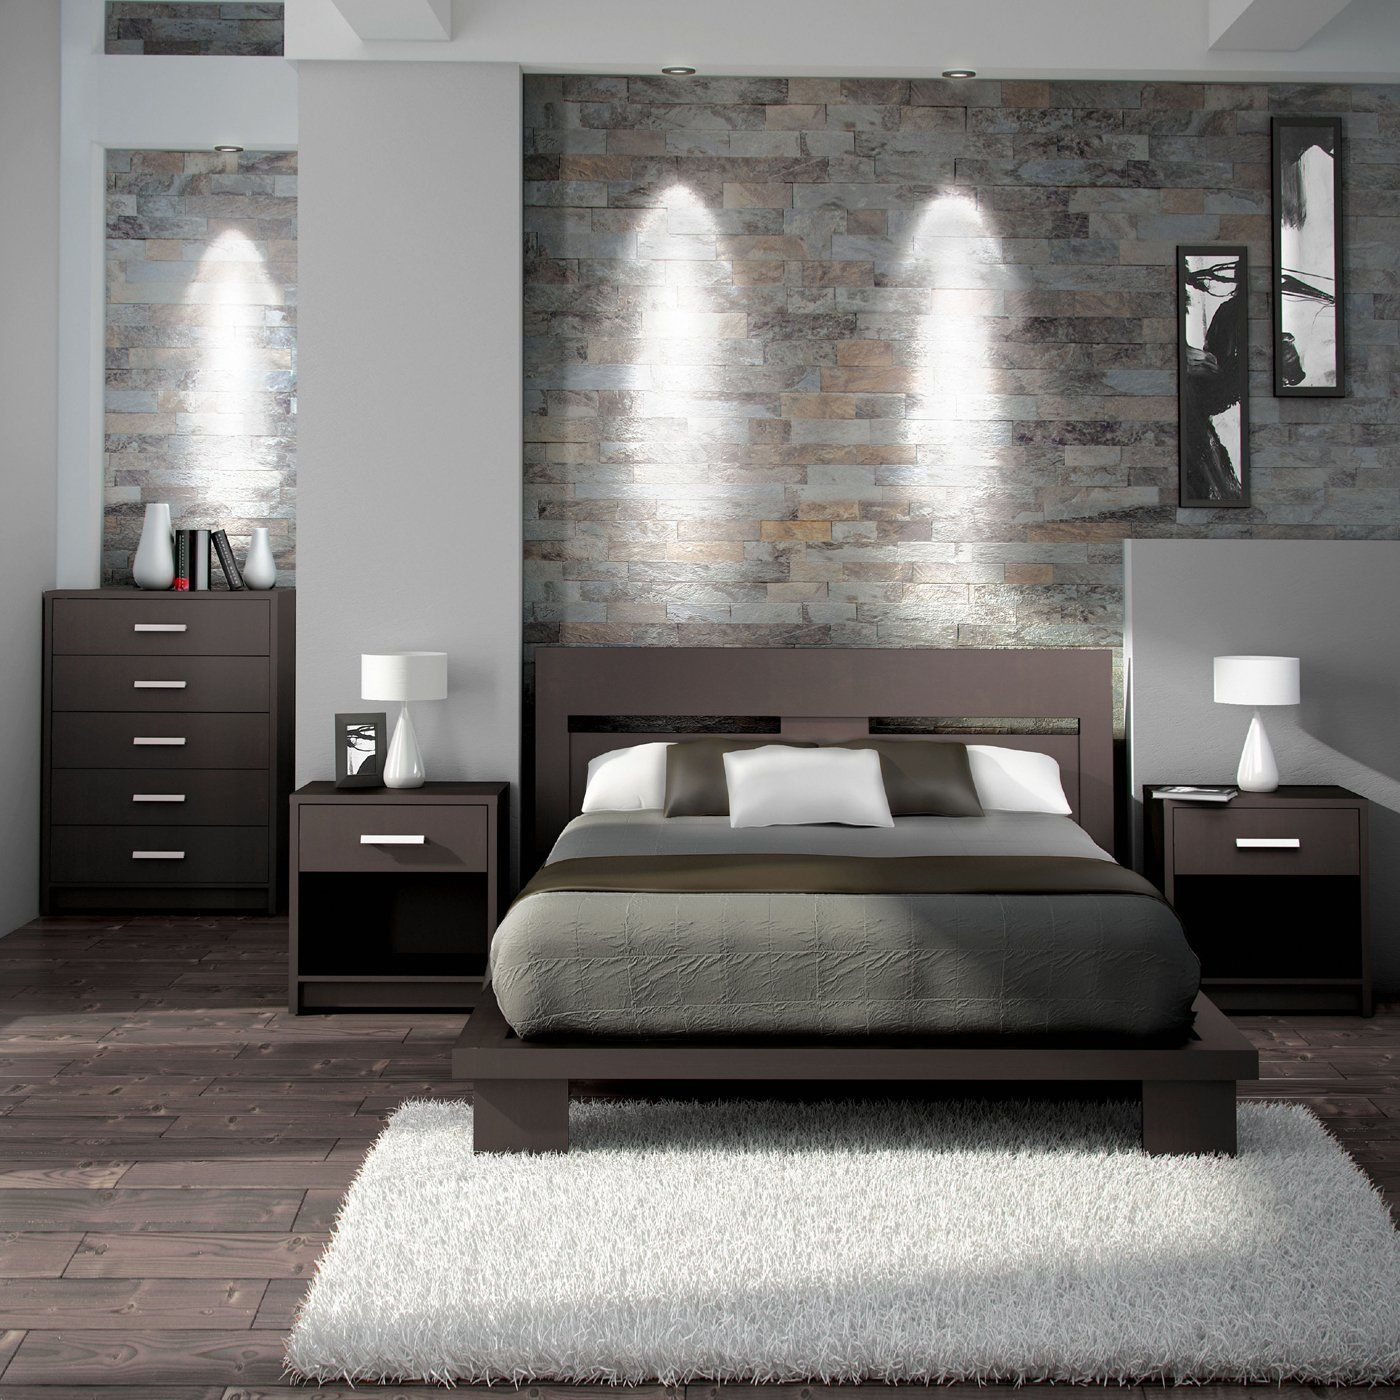 Black Bedroom Ideas Inspiration For Master Bedroom Designs within Modern Bedrooms